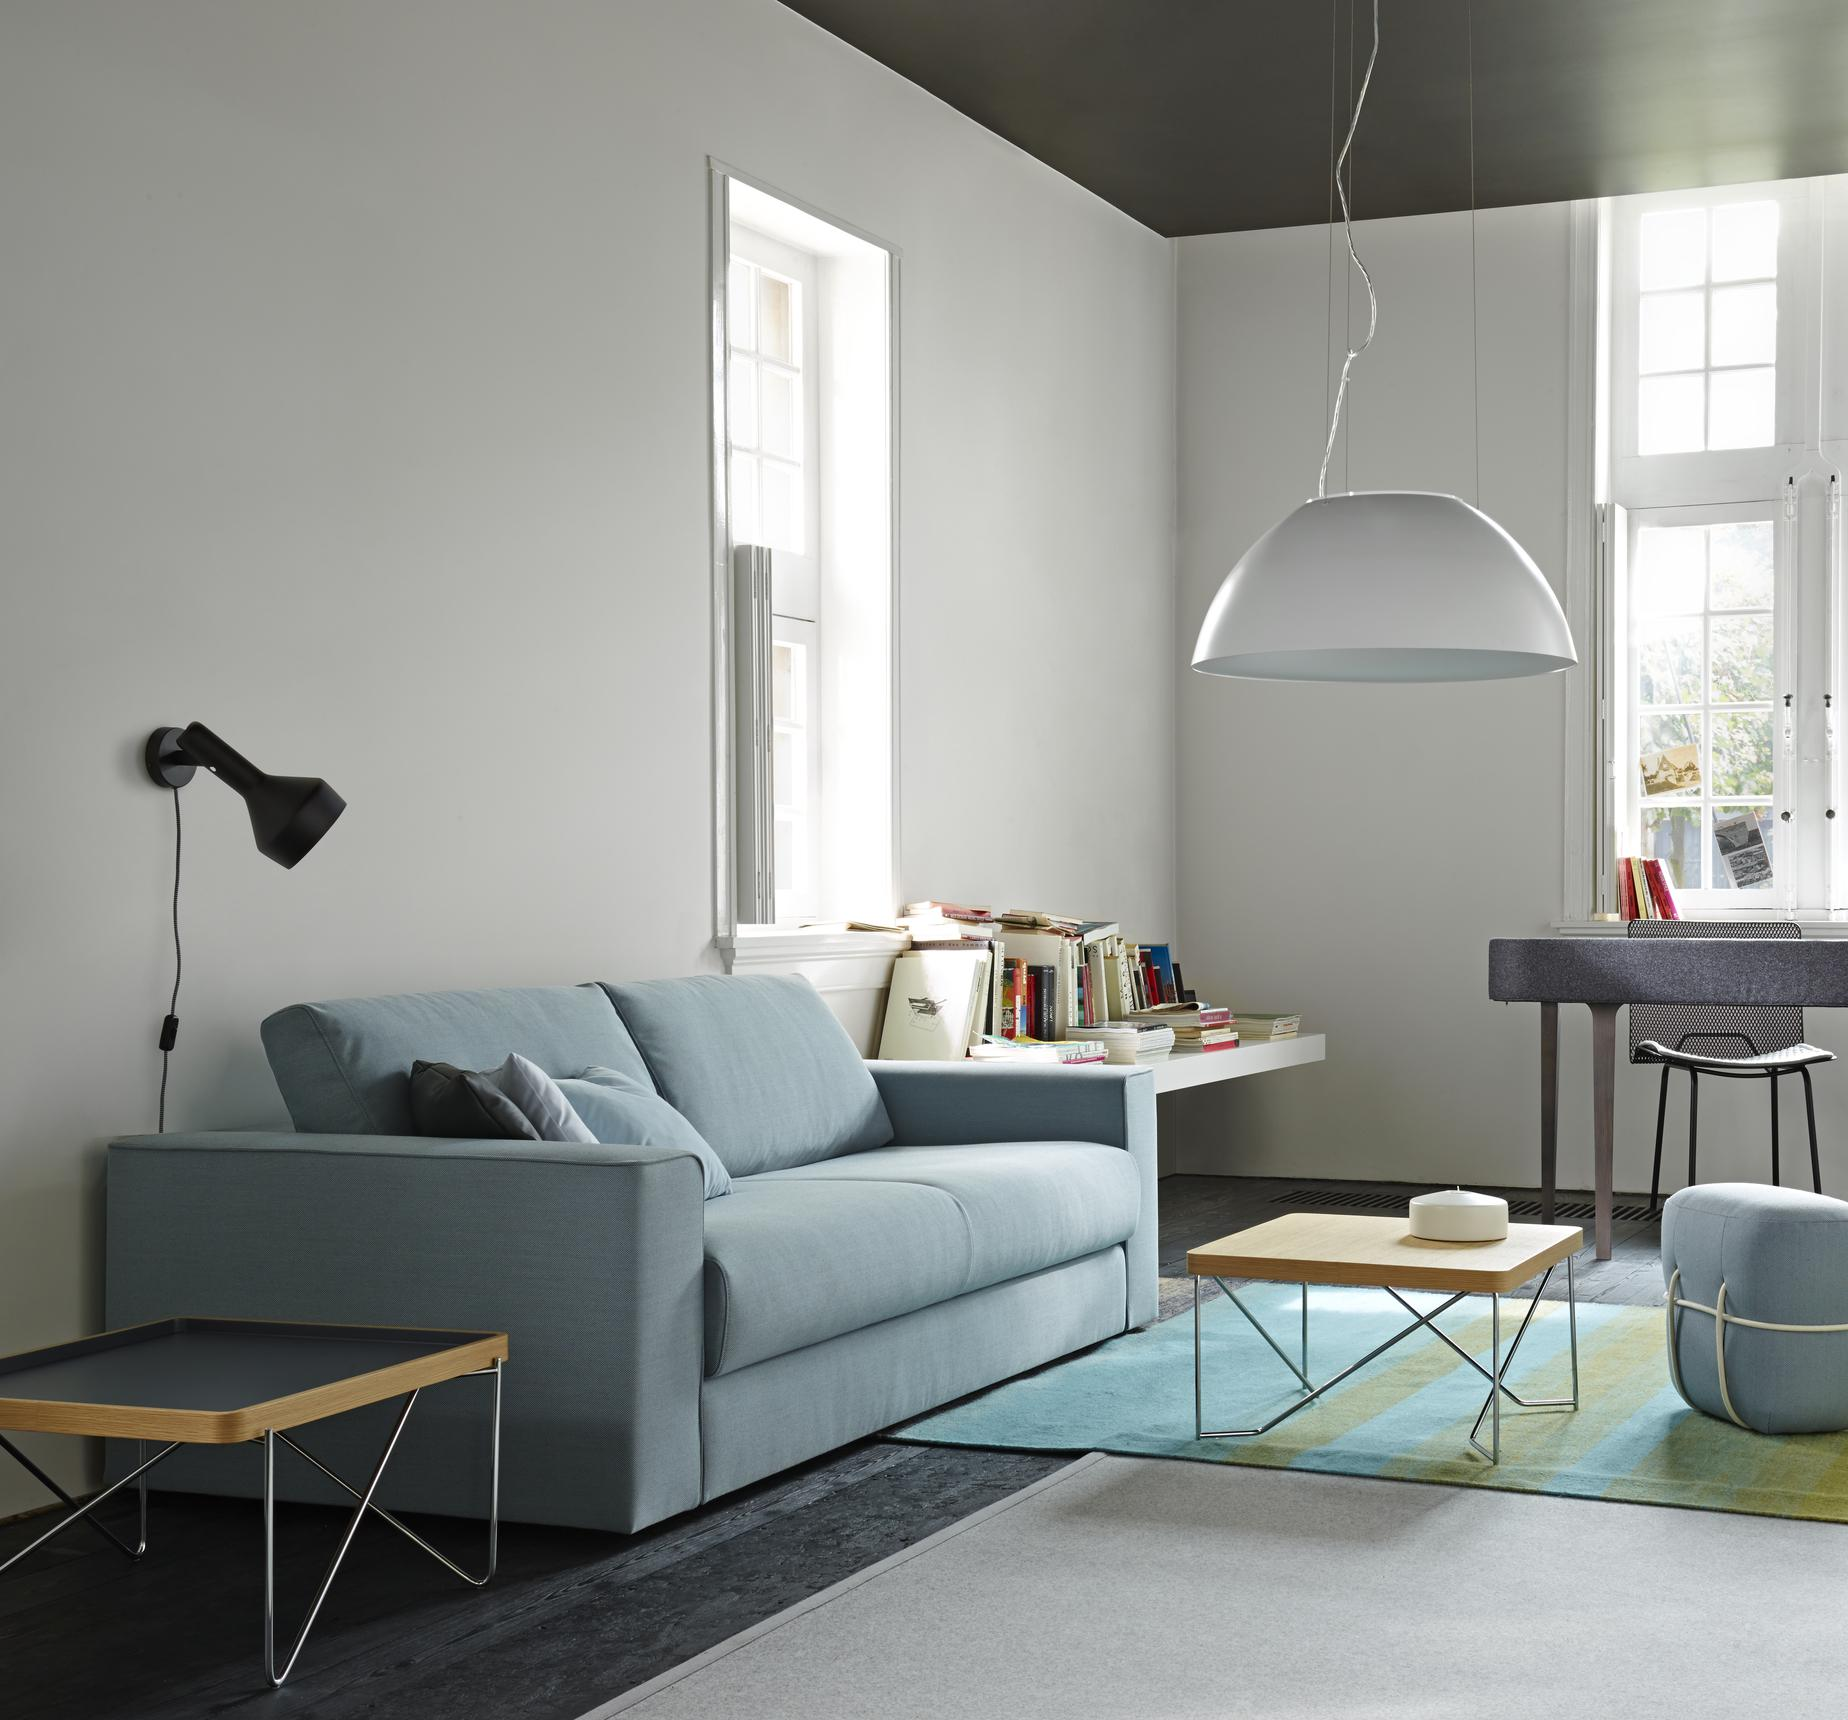 Ligne Roset Schlafsofas Do Not Disturb Sofa Beds From Designer Ligne Roset